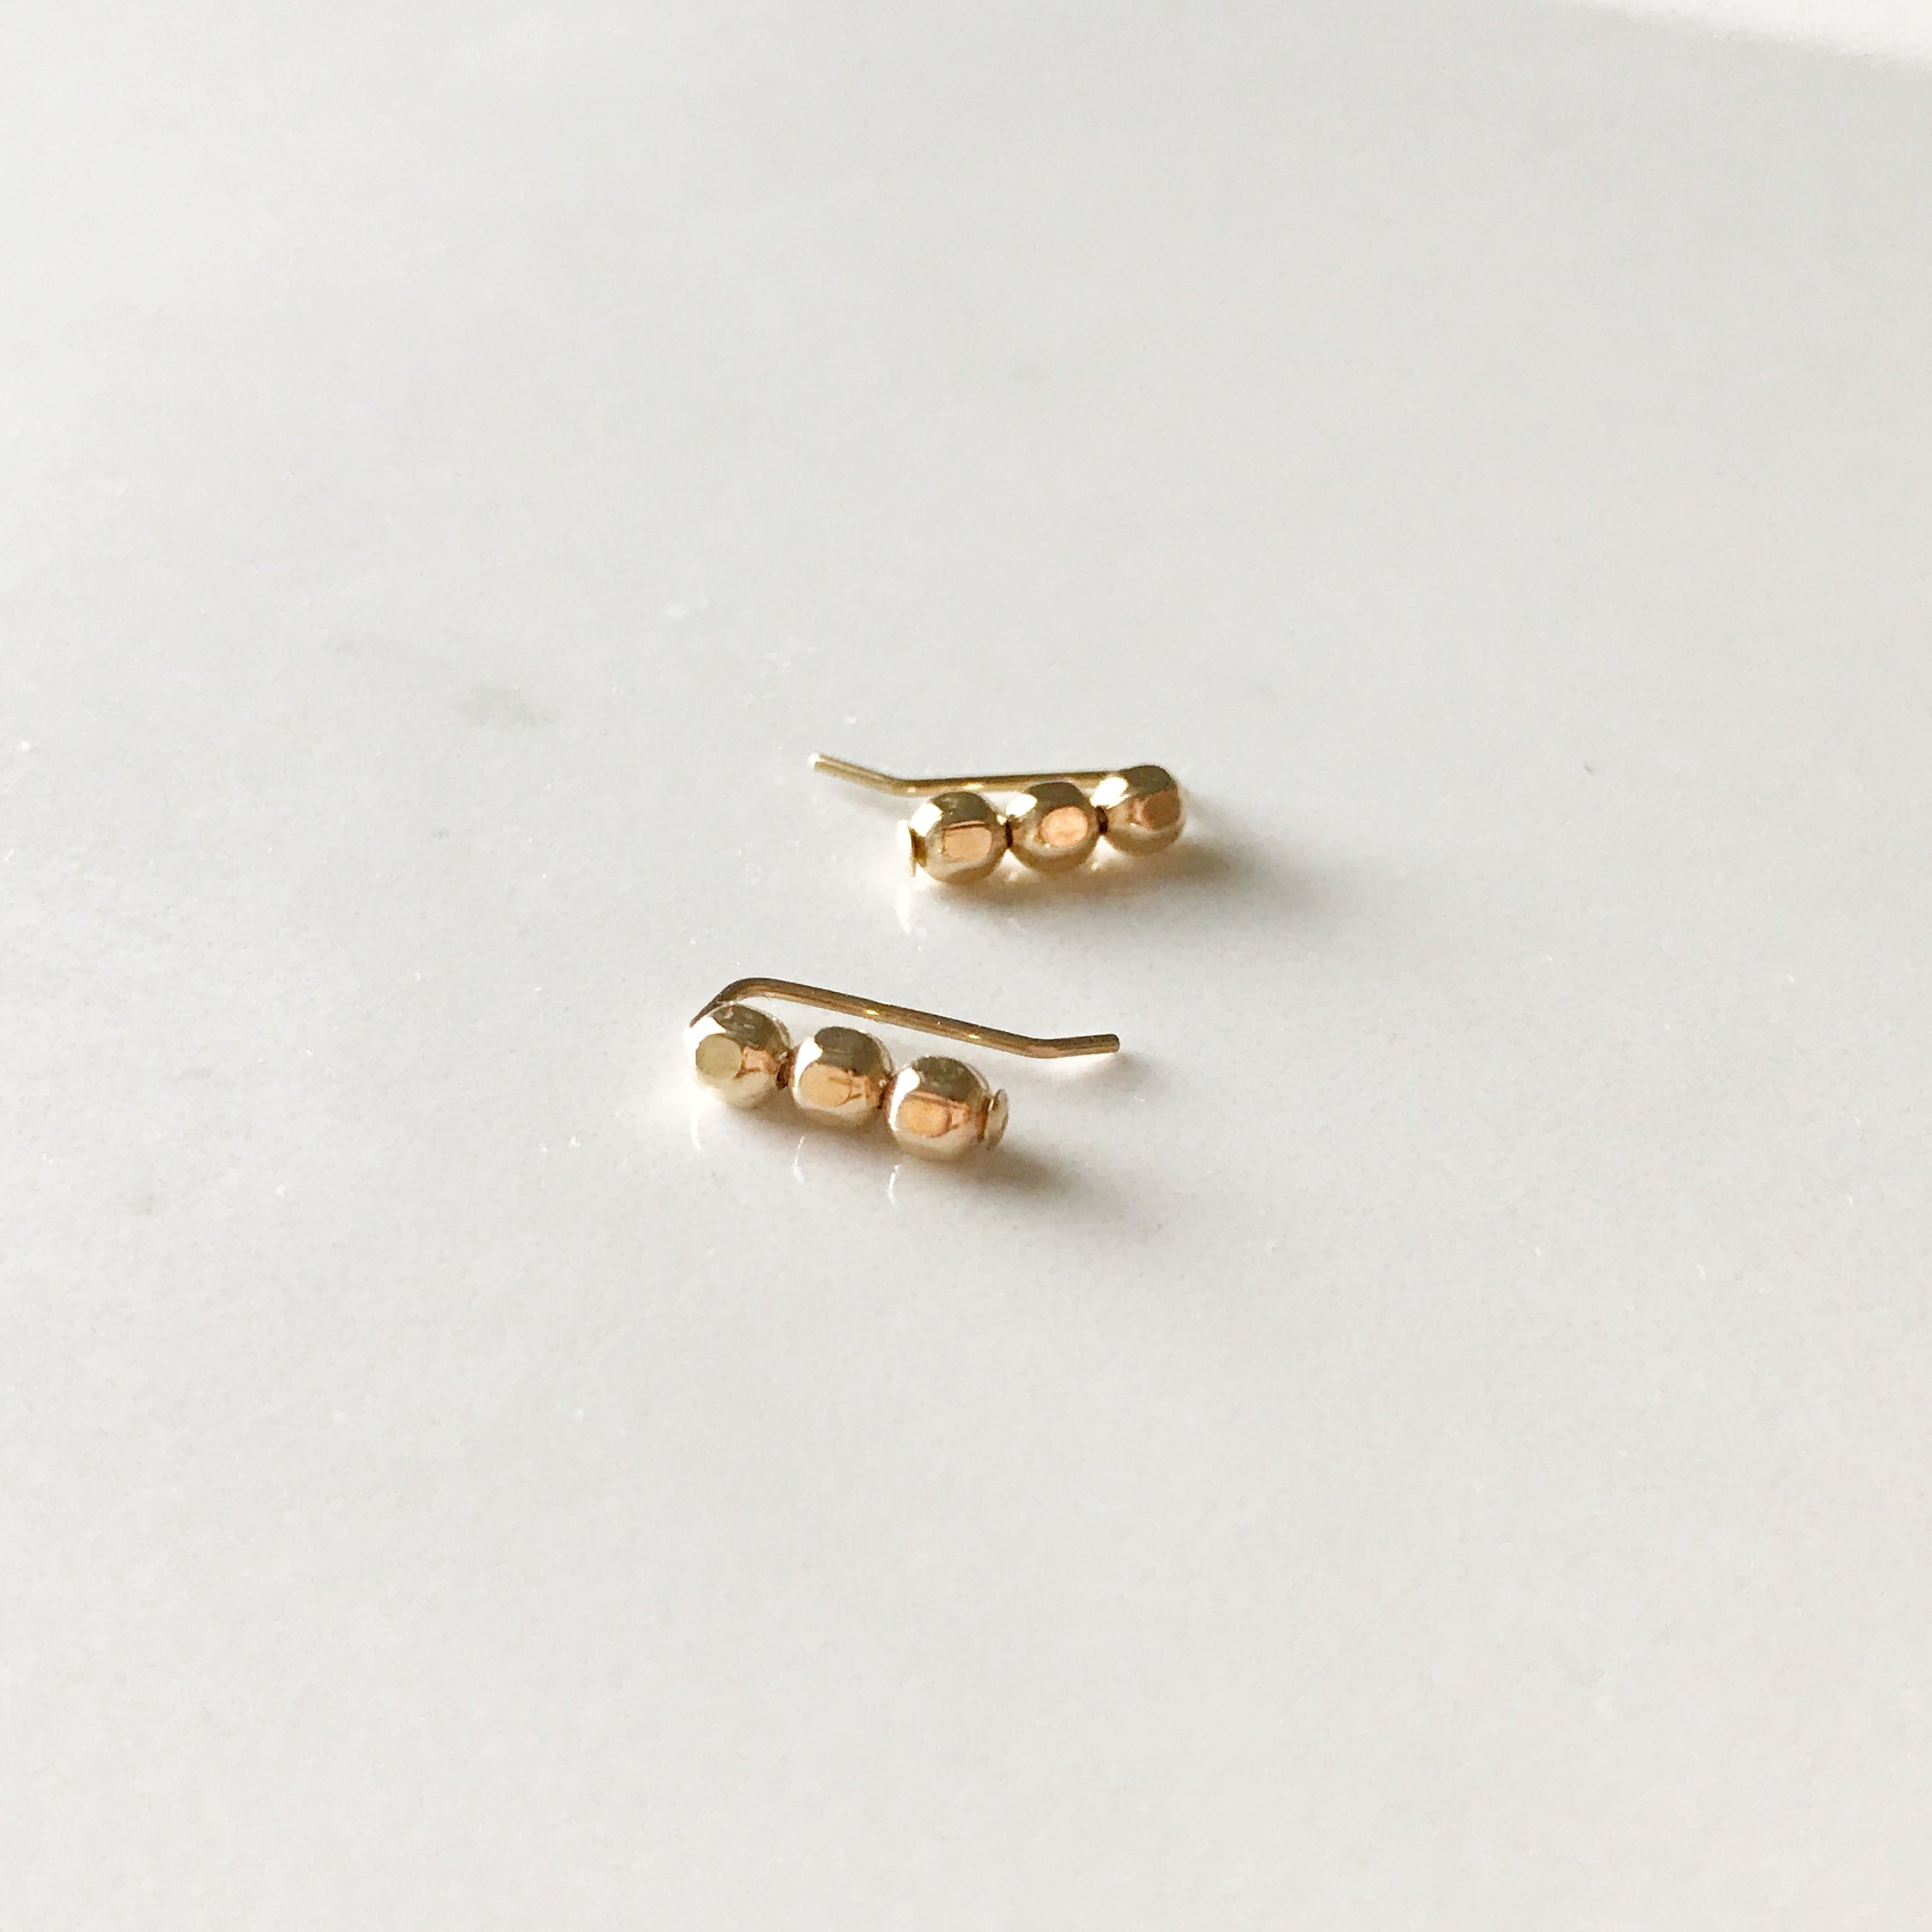 Studded Bar Earcuff Earrings